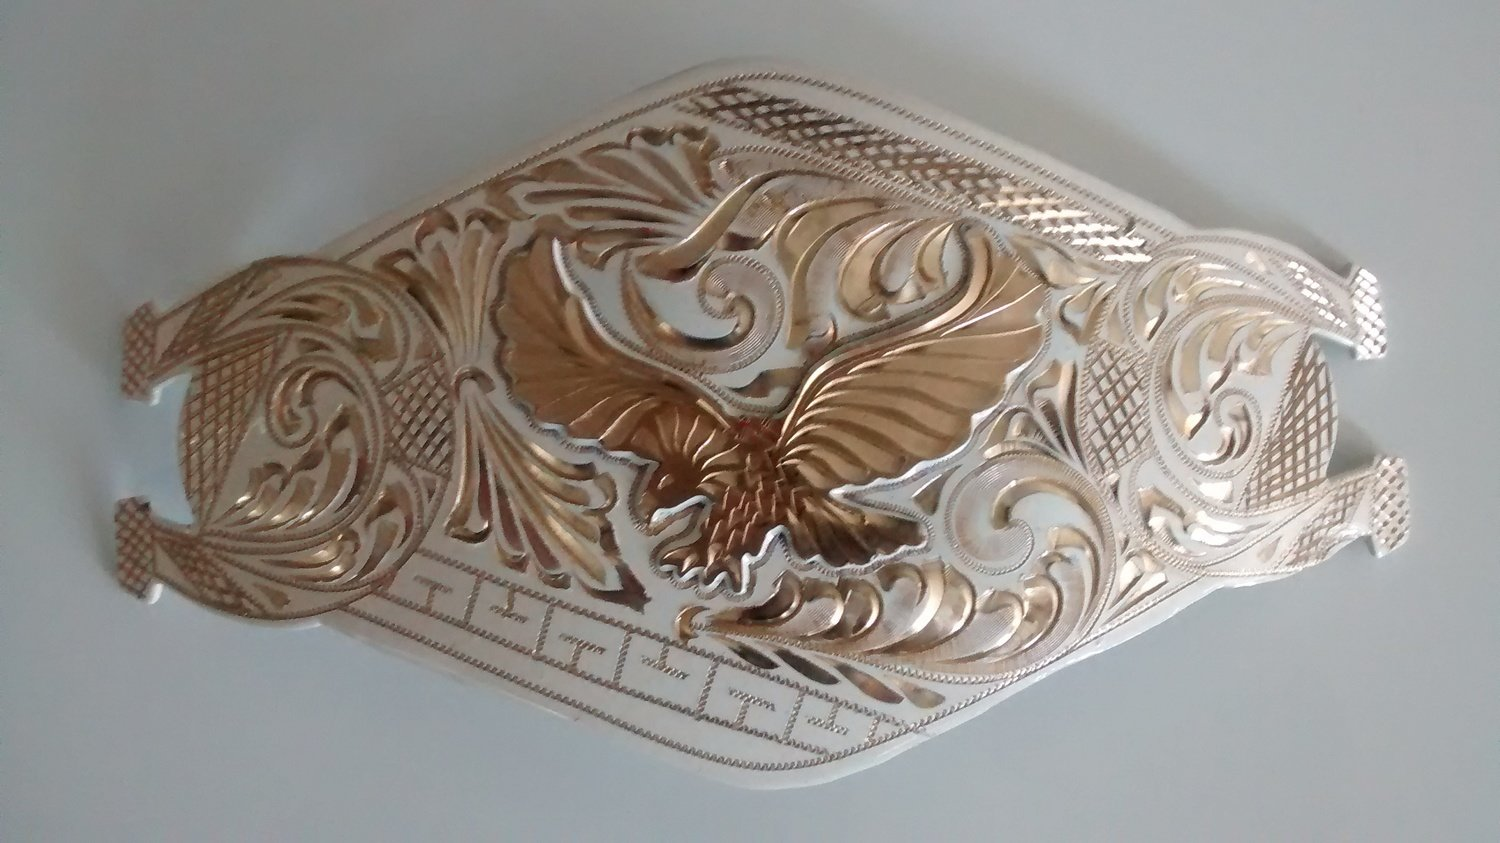 White Shoe Horse Ends w/Eagle Spread Wings Buckles